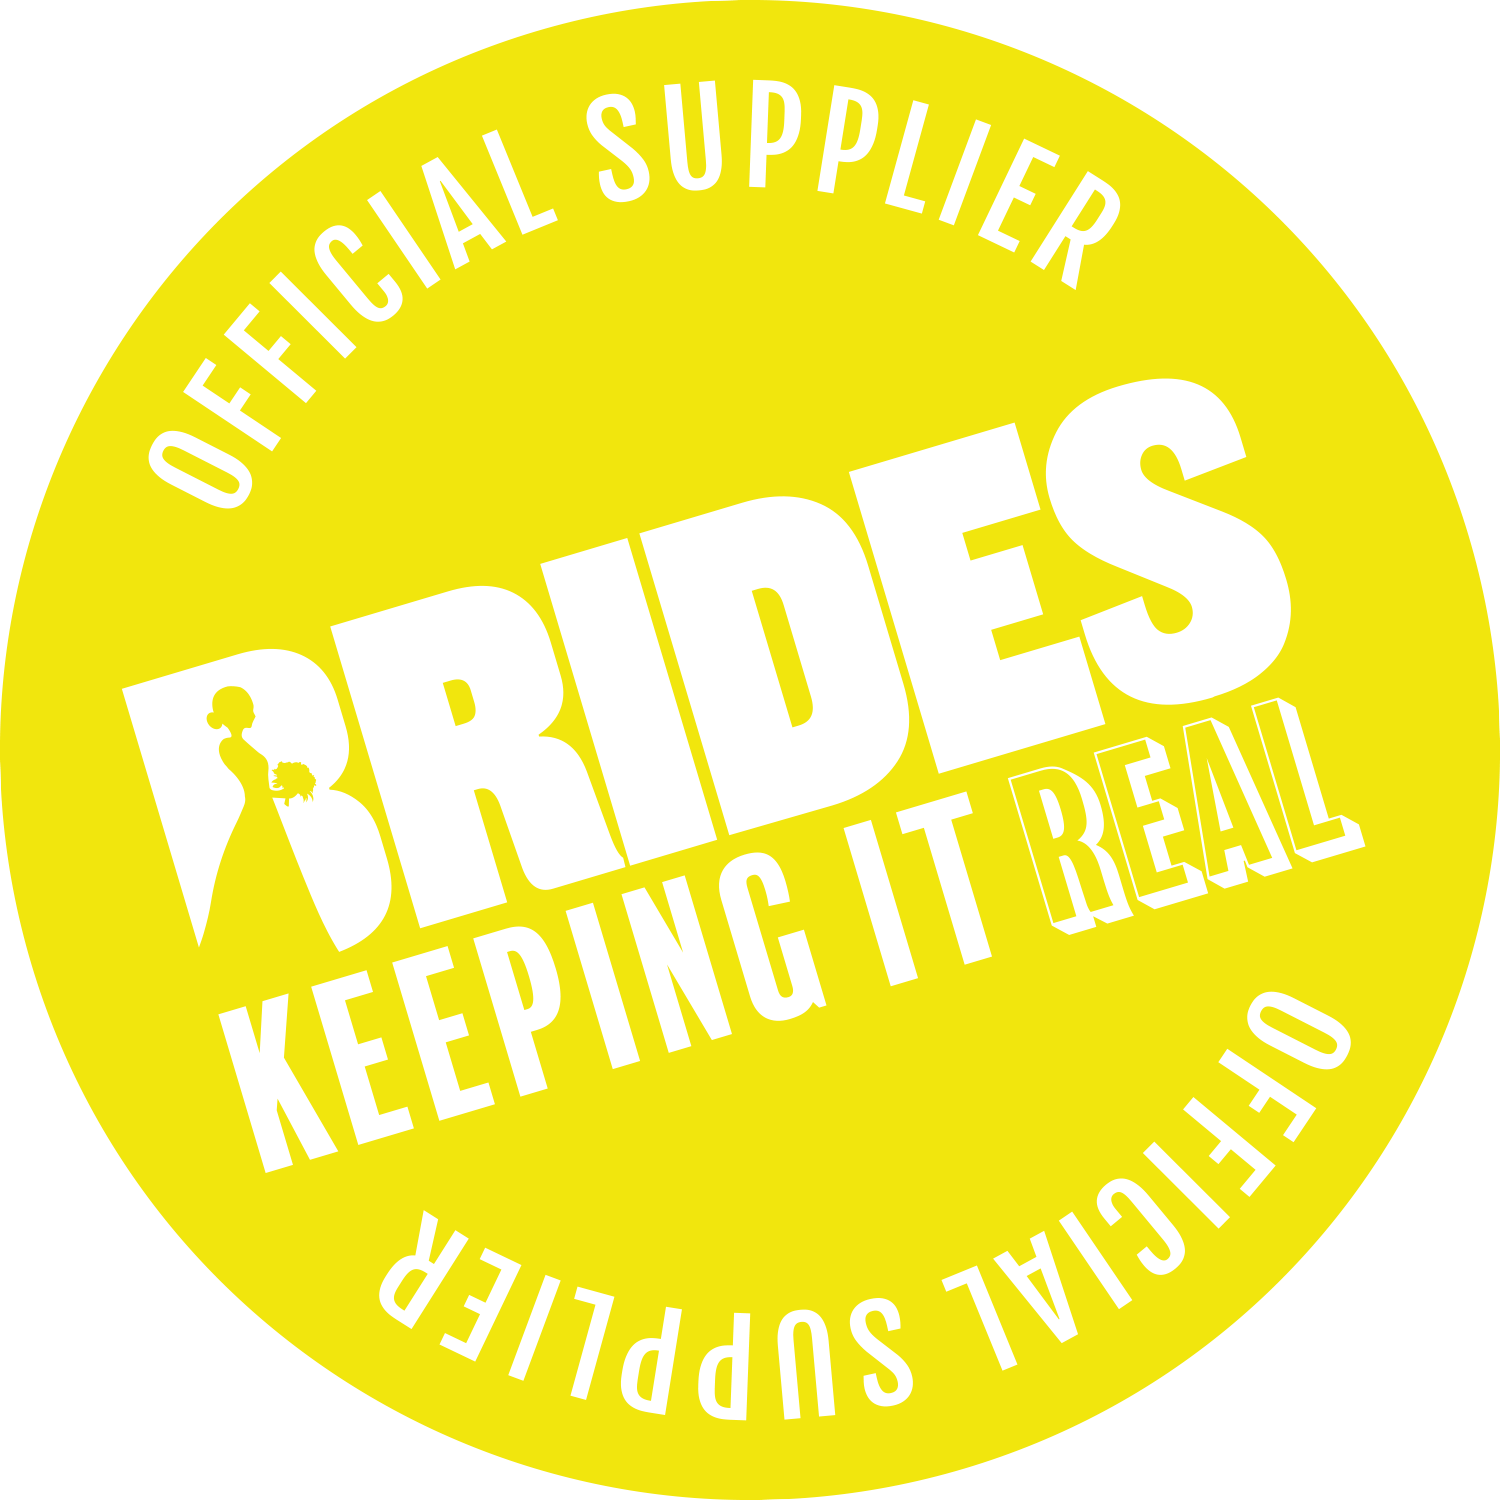 BADGE-_0001_SUPPLIER-YELLOW.png